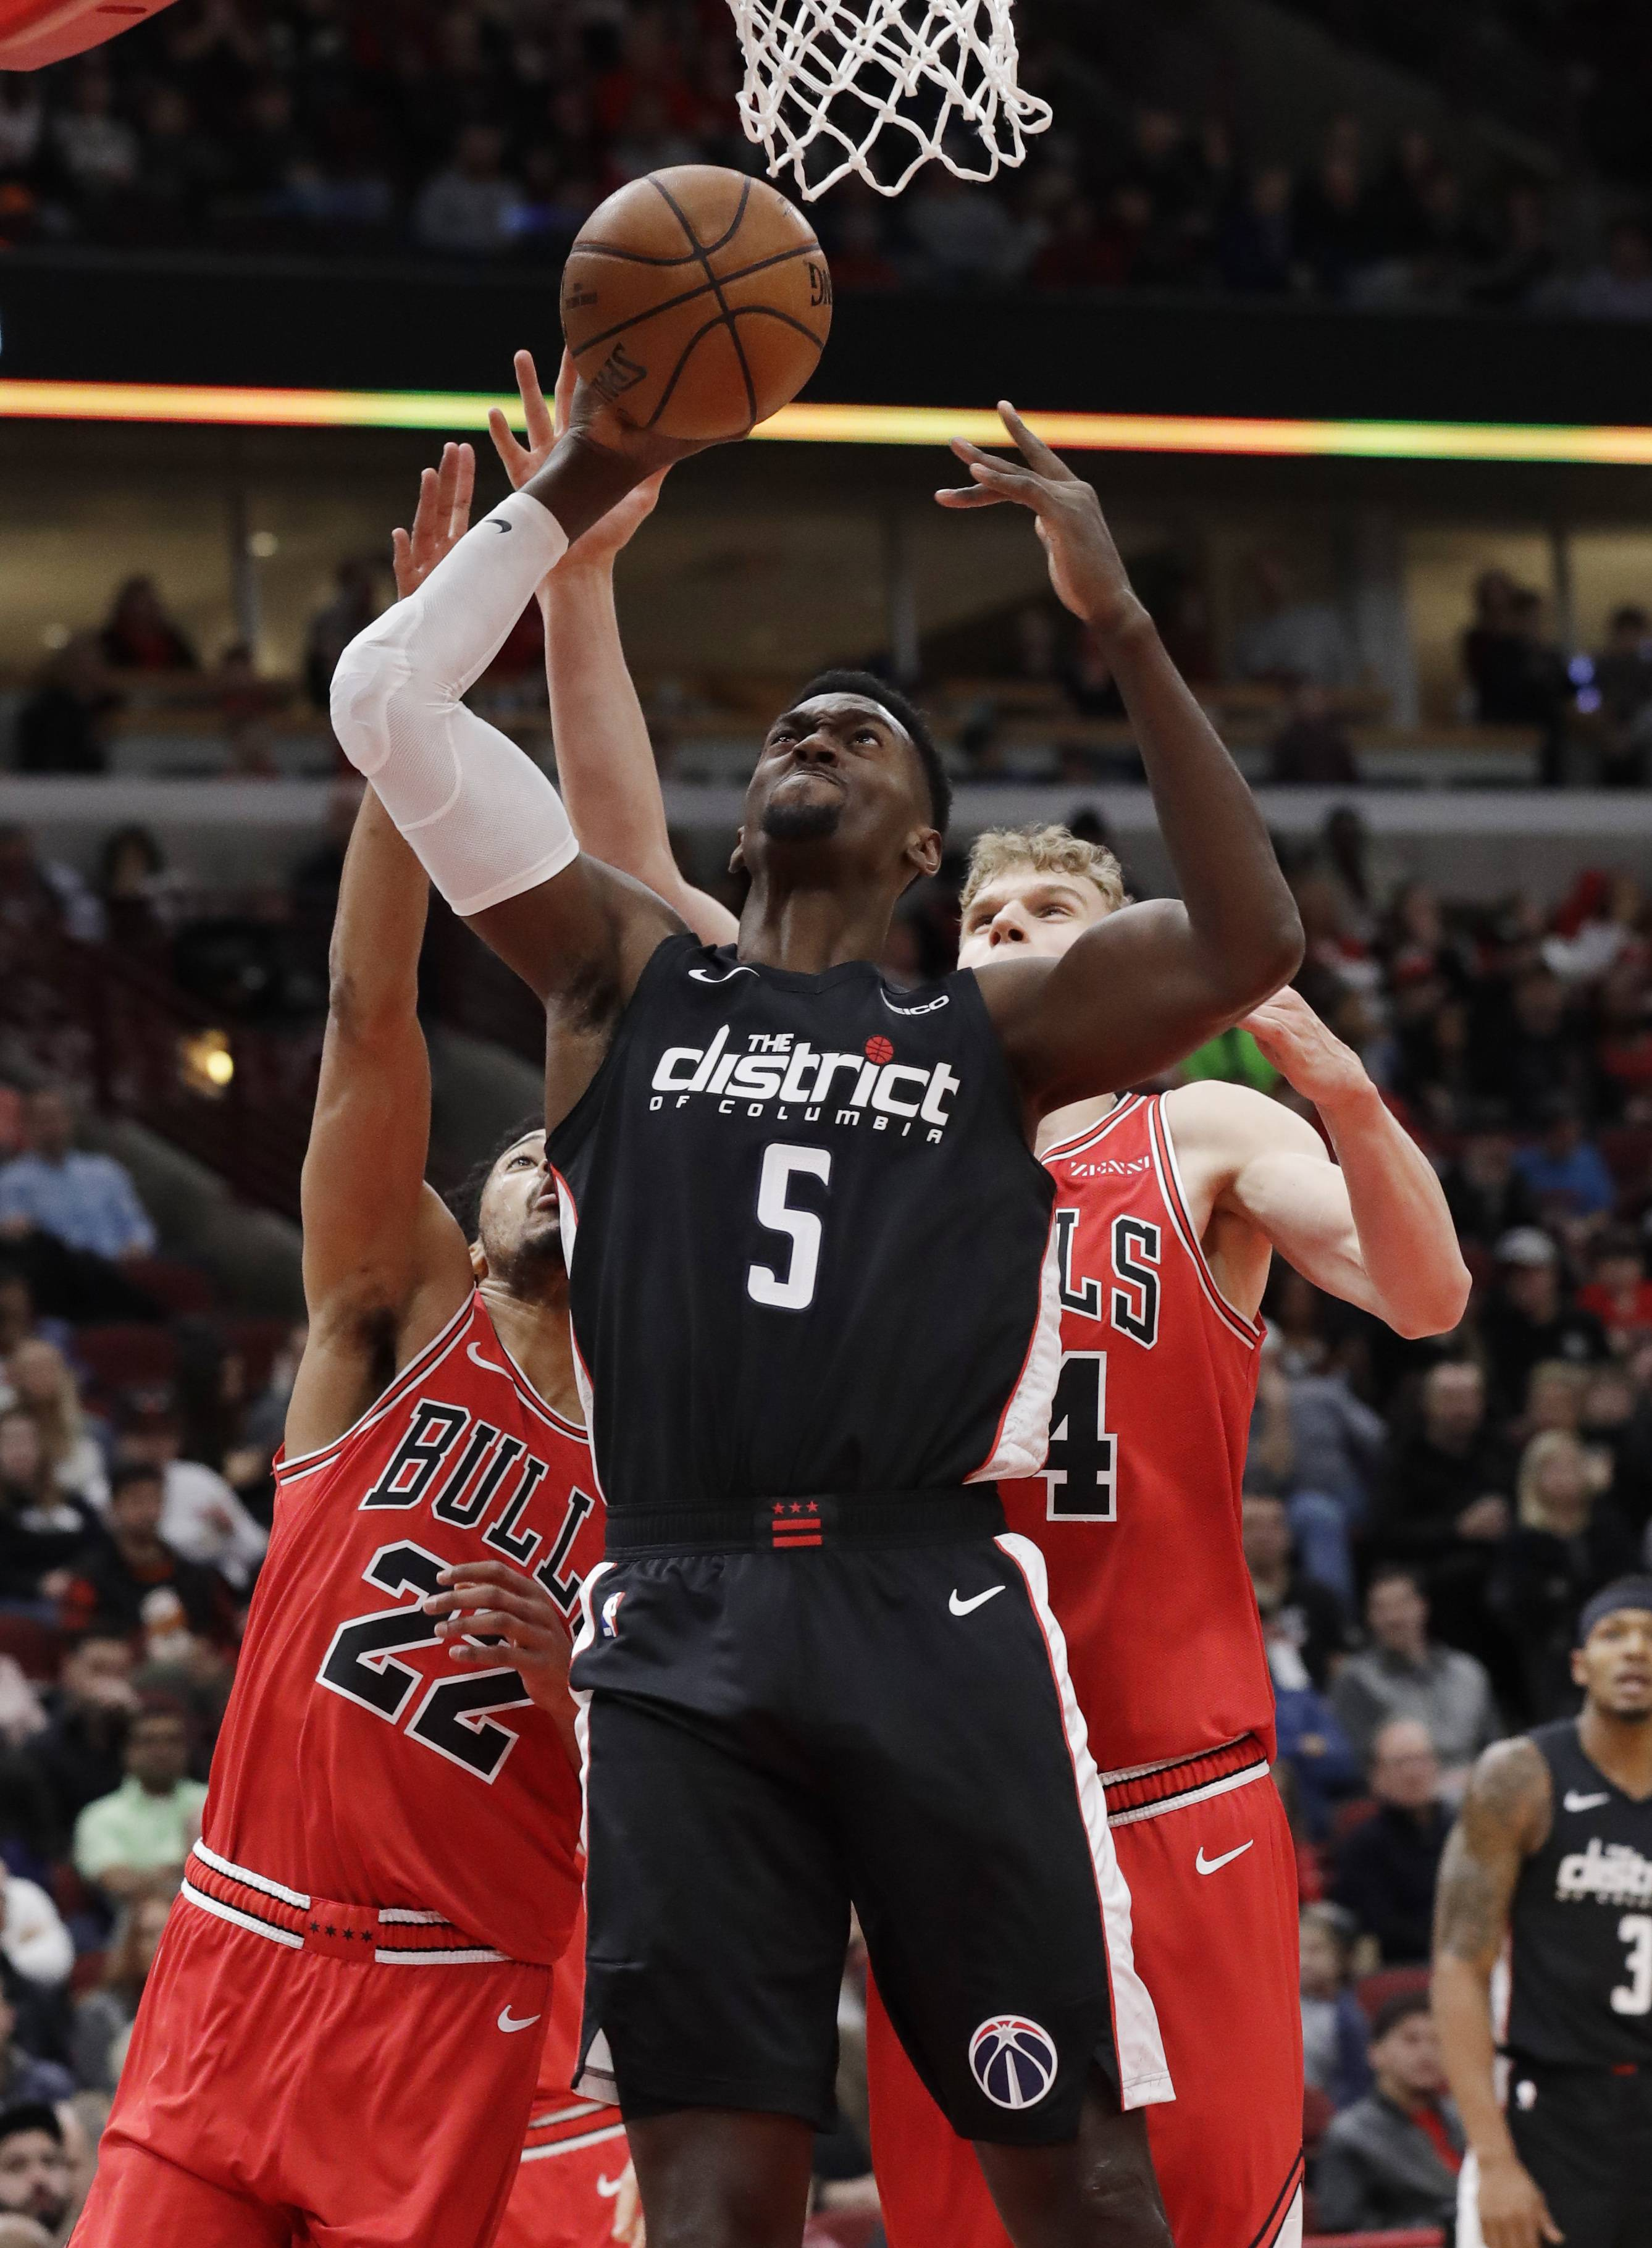 Washington Wizards forward Bobby Portis (5) goes up to shoot against Chicago Bulls forward Otto Porter Jr., left, and forward Lauri Markkanen during the first half of an NBA basketball game Saturday, Feb. 9, 2019, in Chicago.